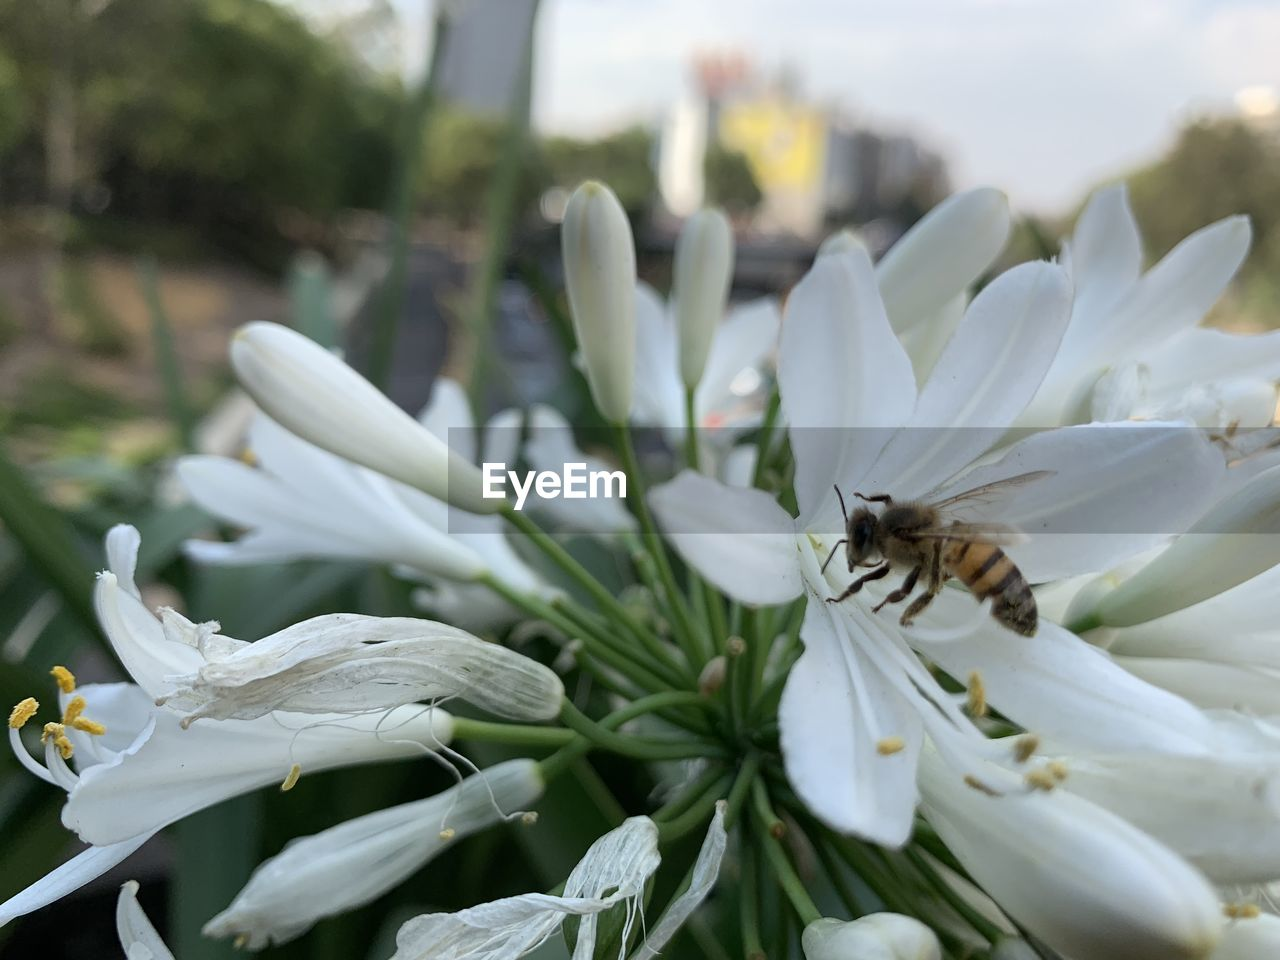 flower, invertebrate, flowering plant, animal themes, insect, beauty in nature, animals in the wild, animal wildlife, fragility, vulnerability, animal, petal, close-up, flower head, bee, plant, white color, one animal, growth, freshness, no people, pollen, pollination